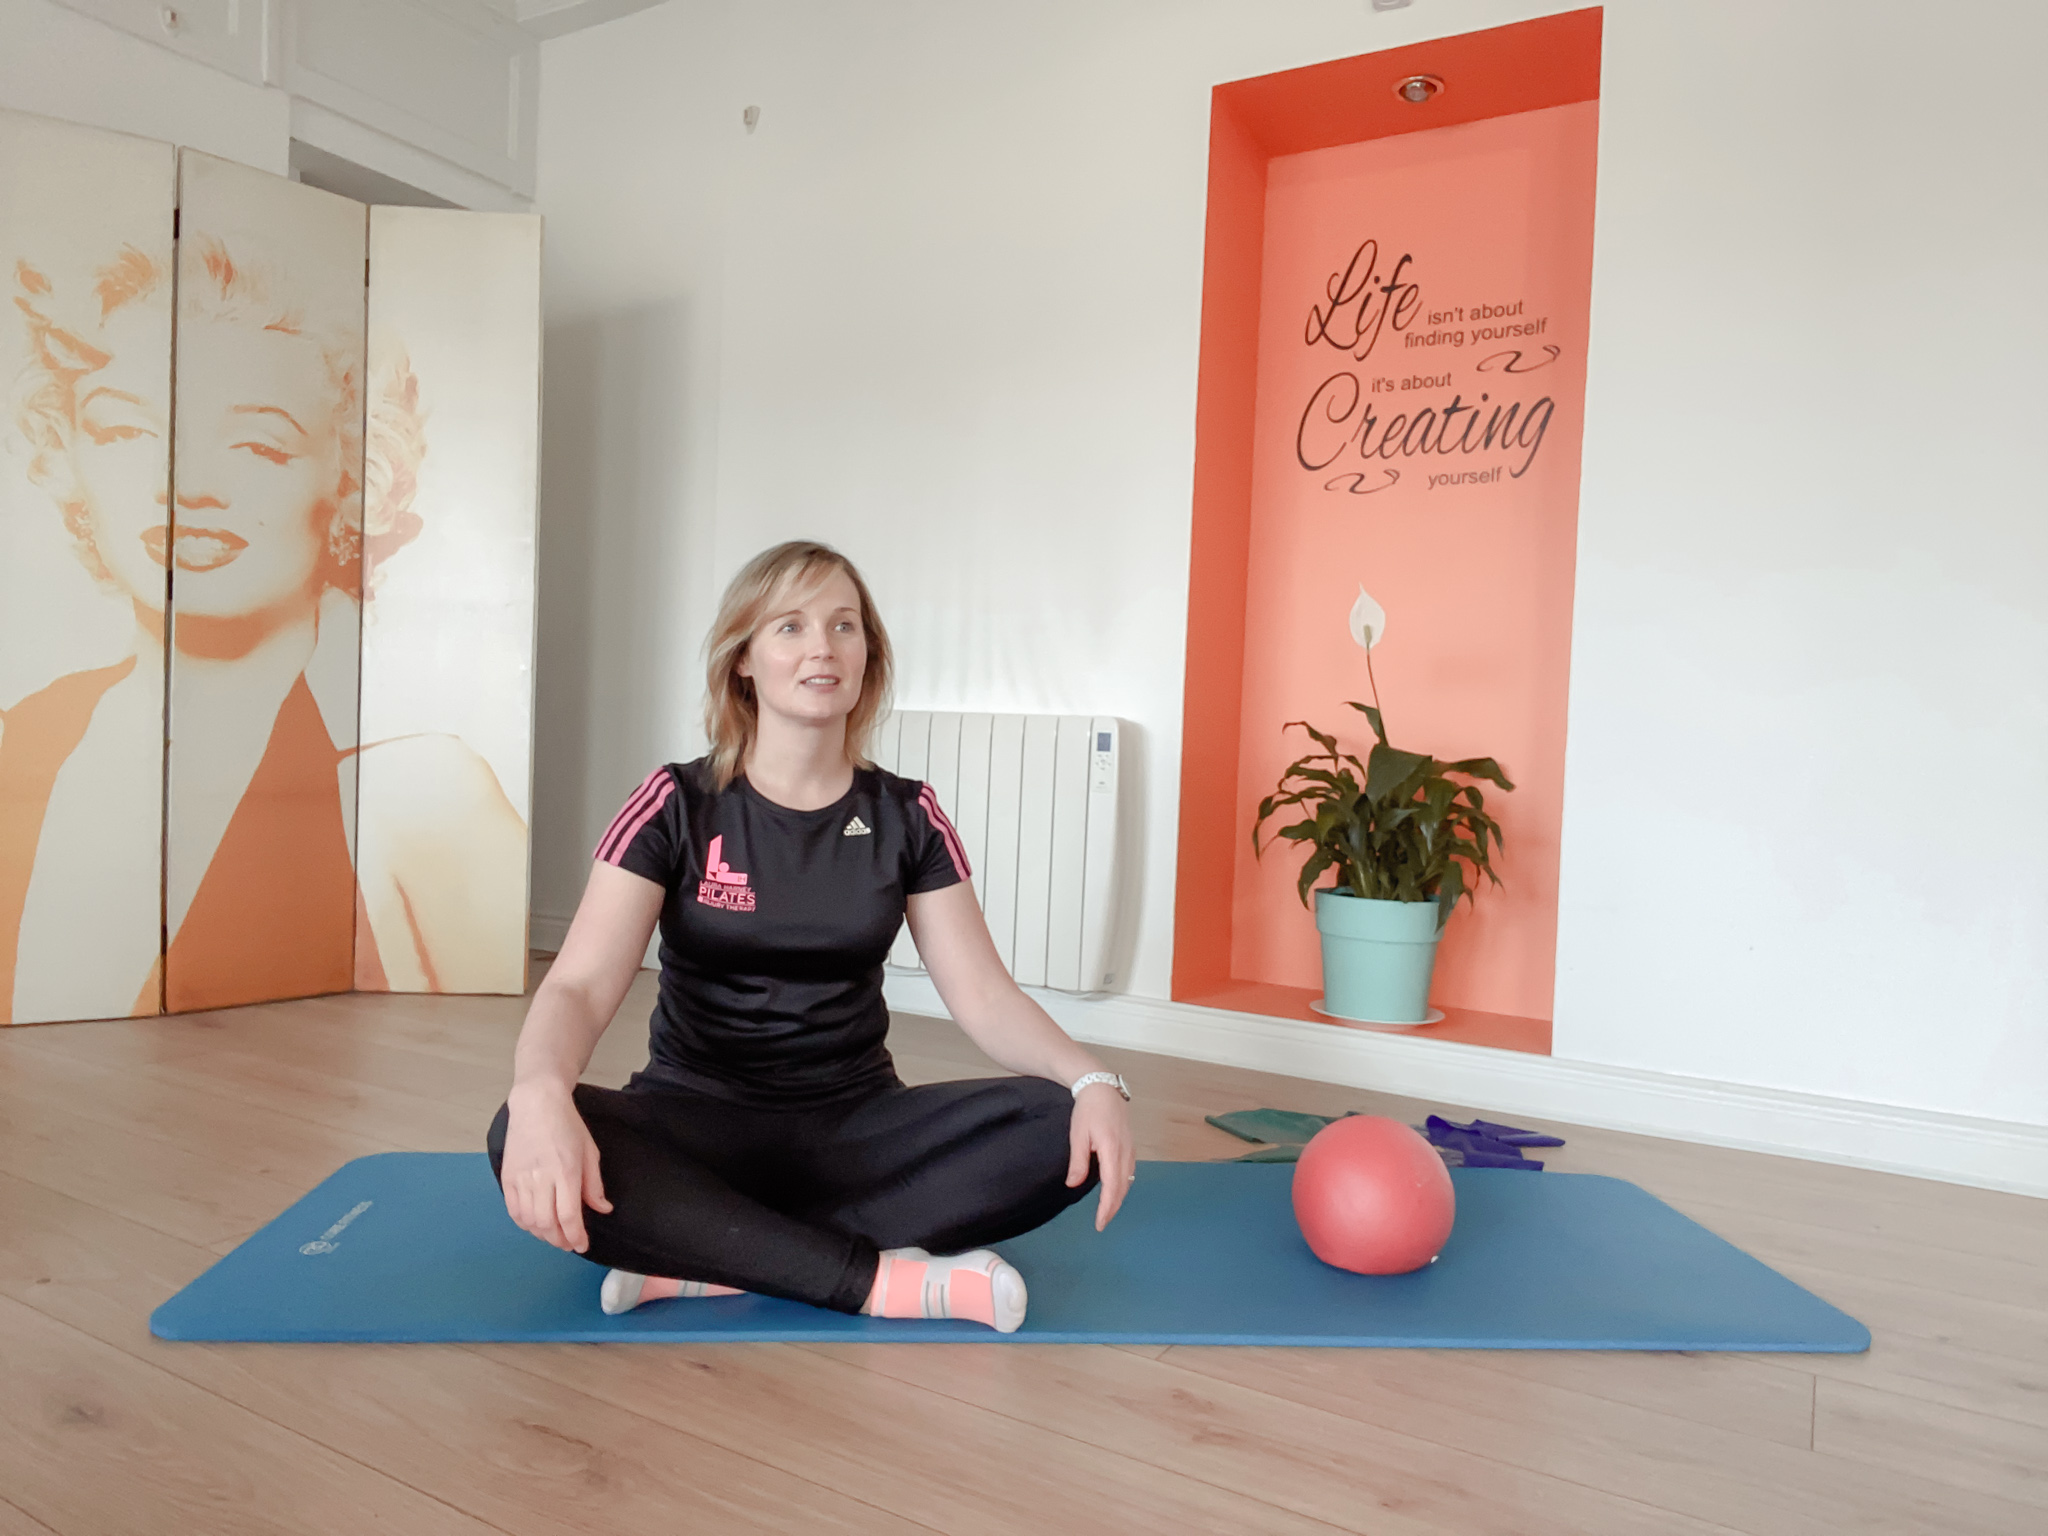 laura harney in studio sitting on mat with pilates props